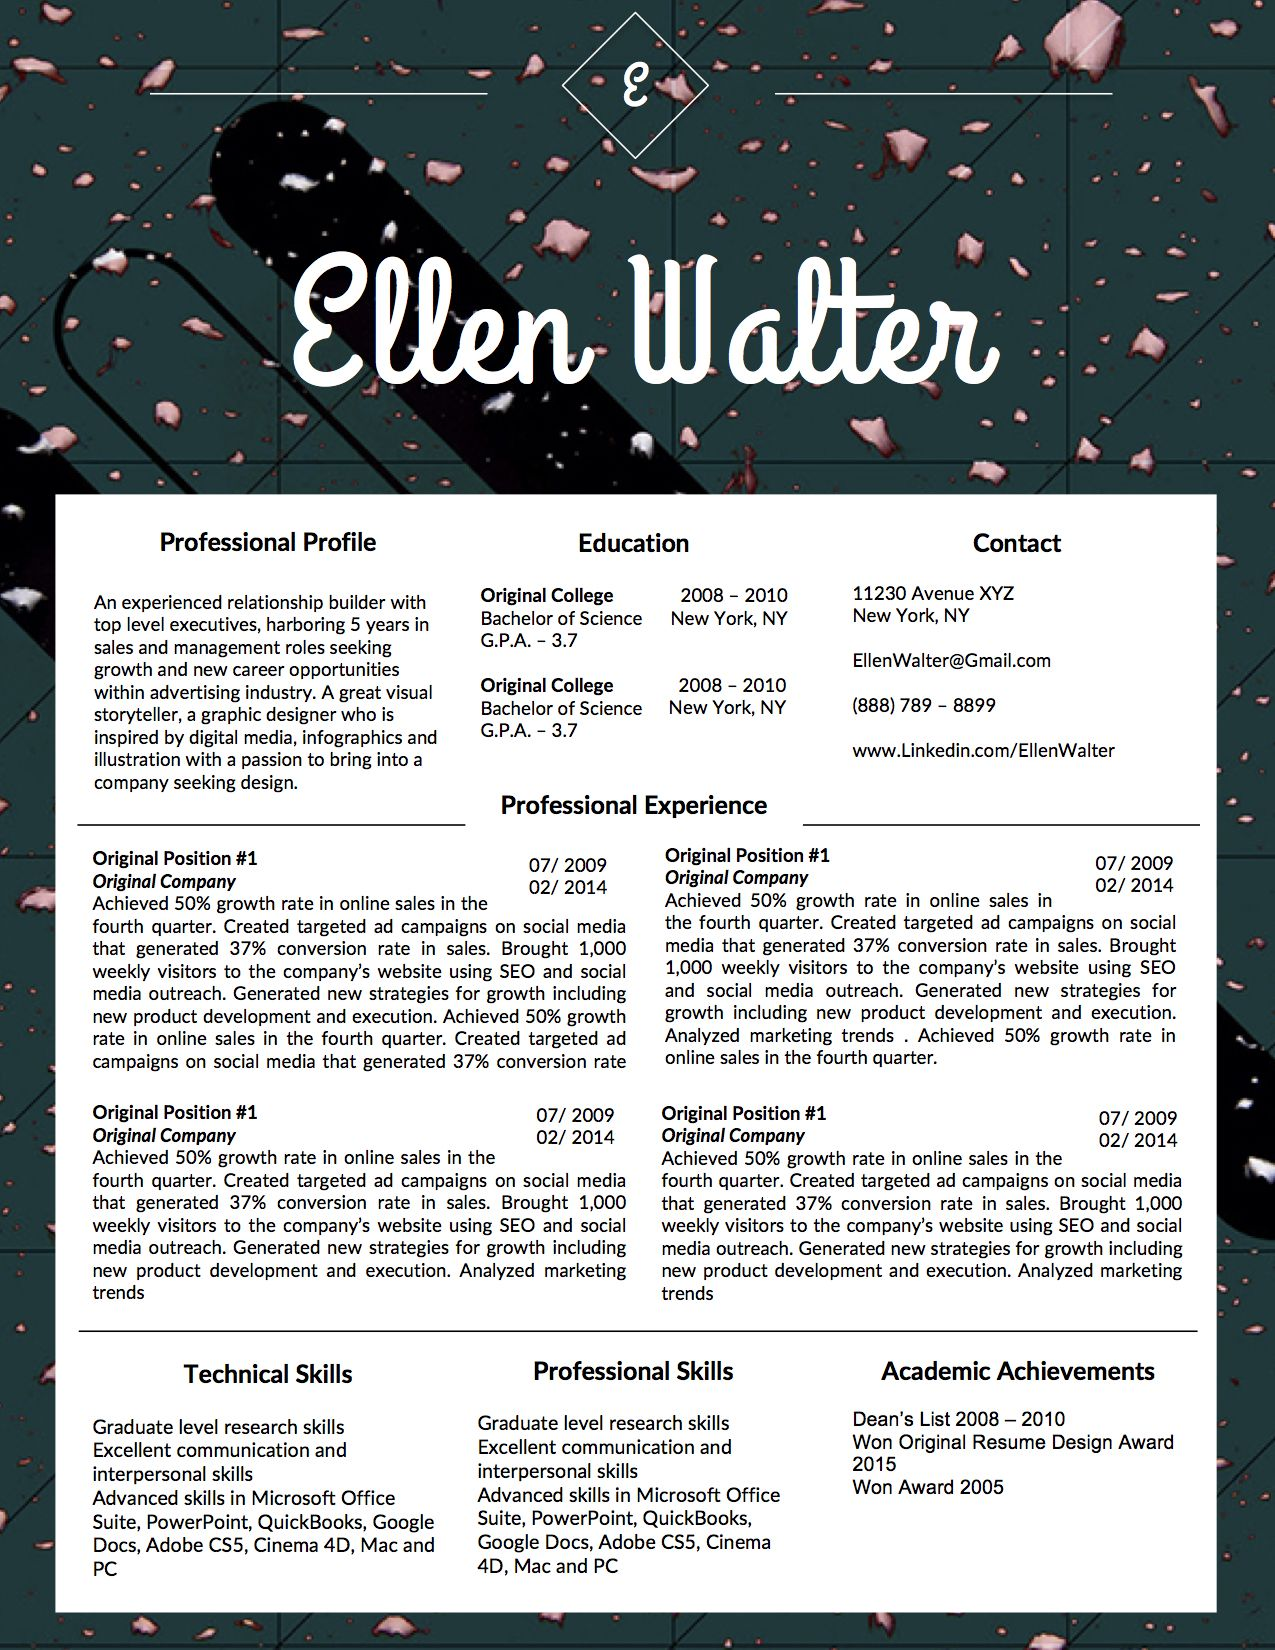 1000 images about the ellen walter personal branding kit